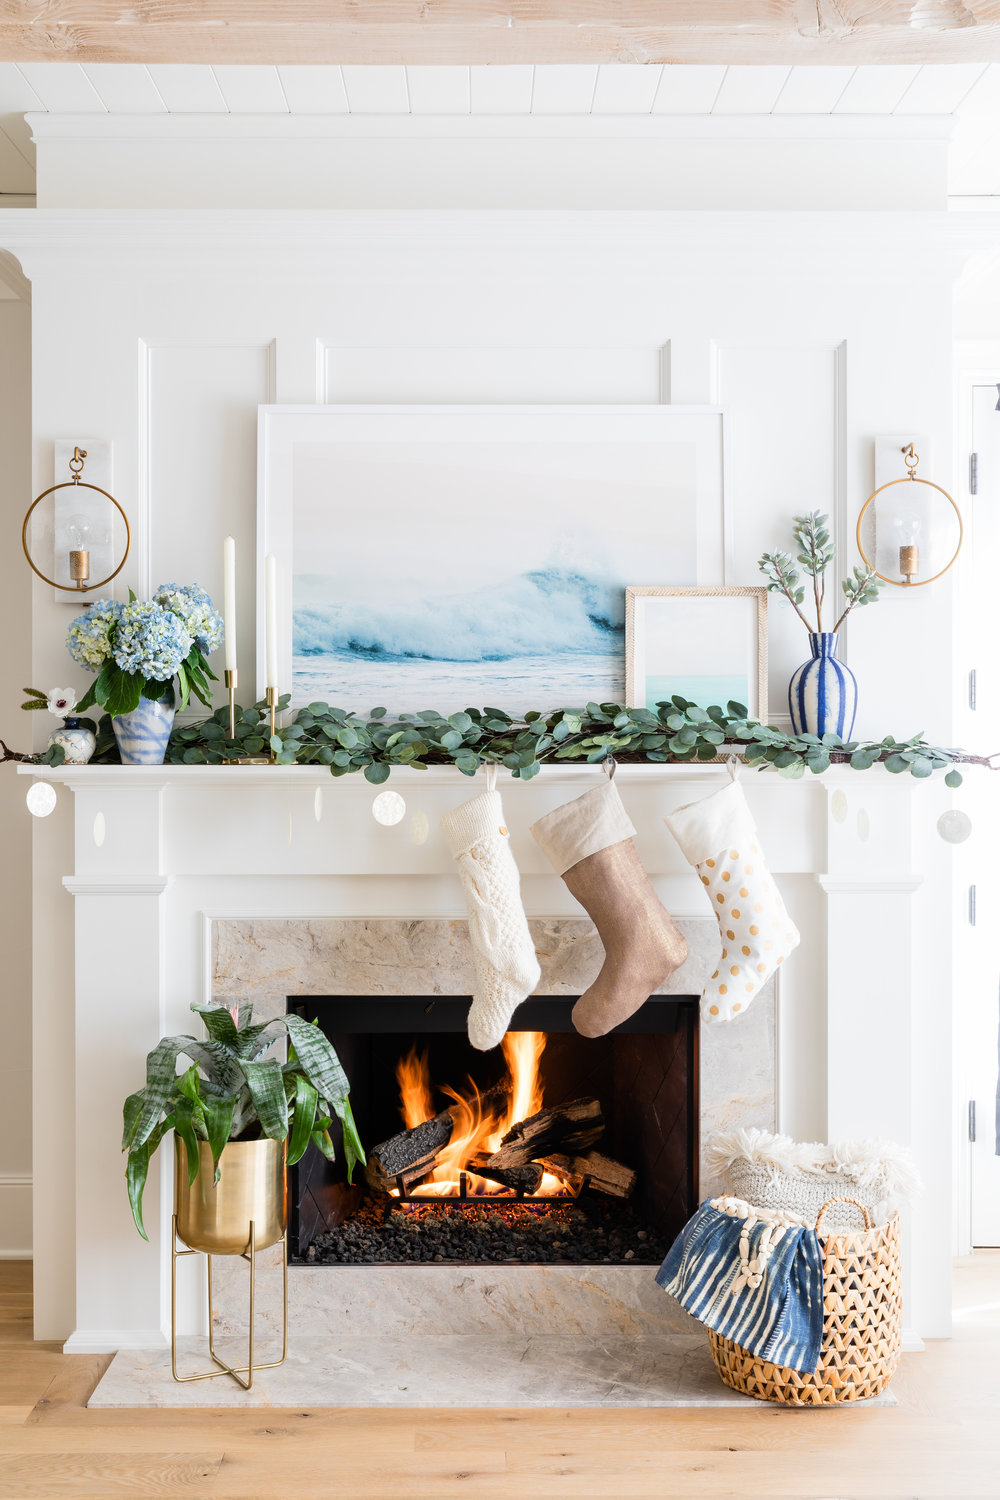 Pottery Barn and West Elm Christmas decor for beachy boho look on mantle.